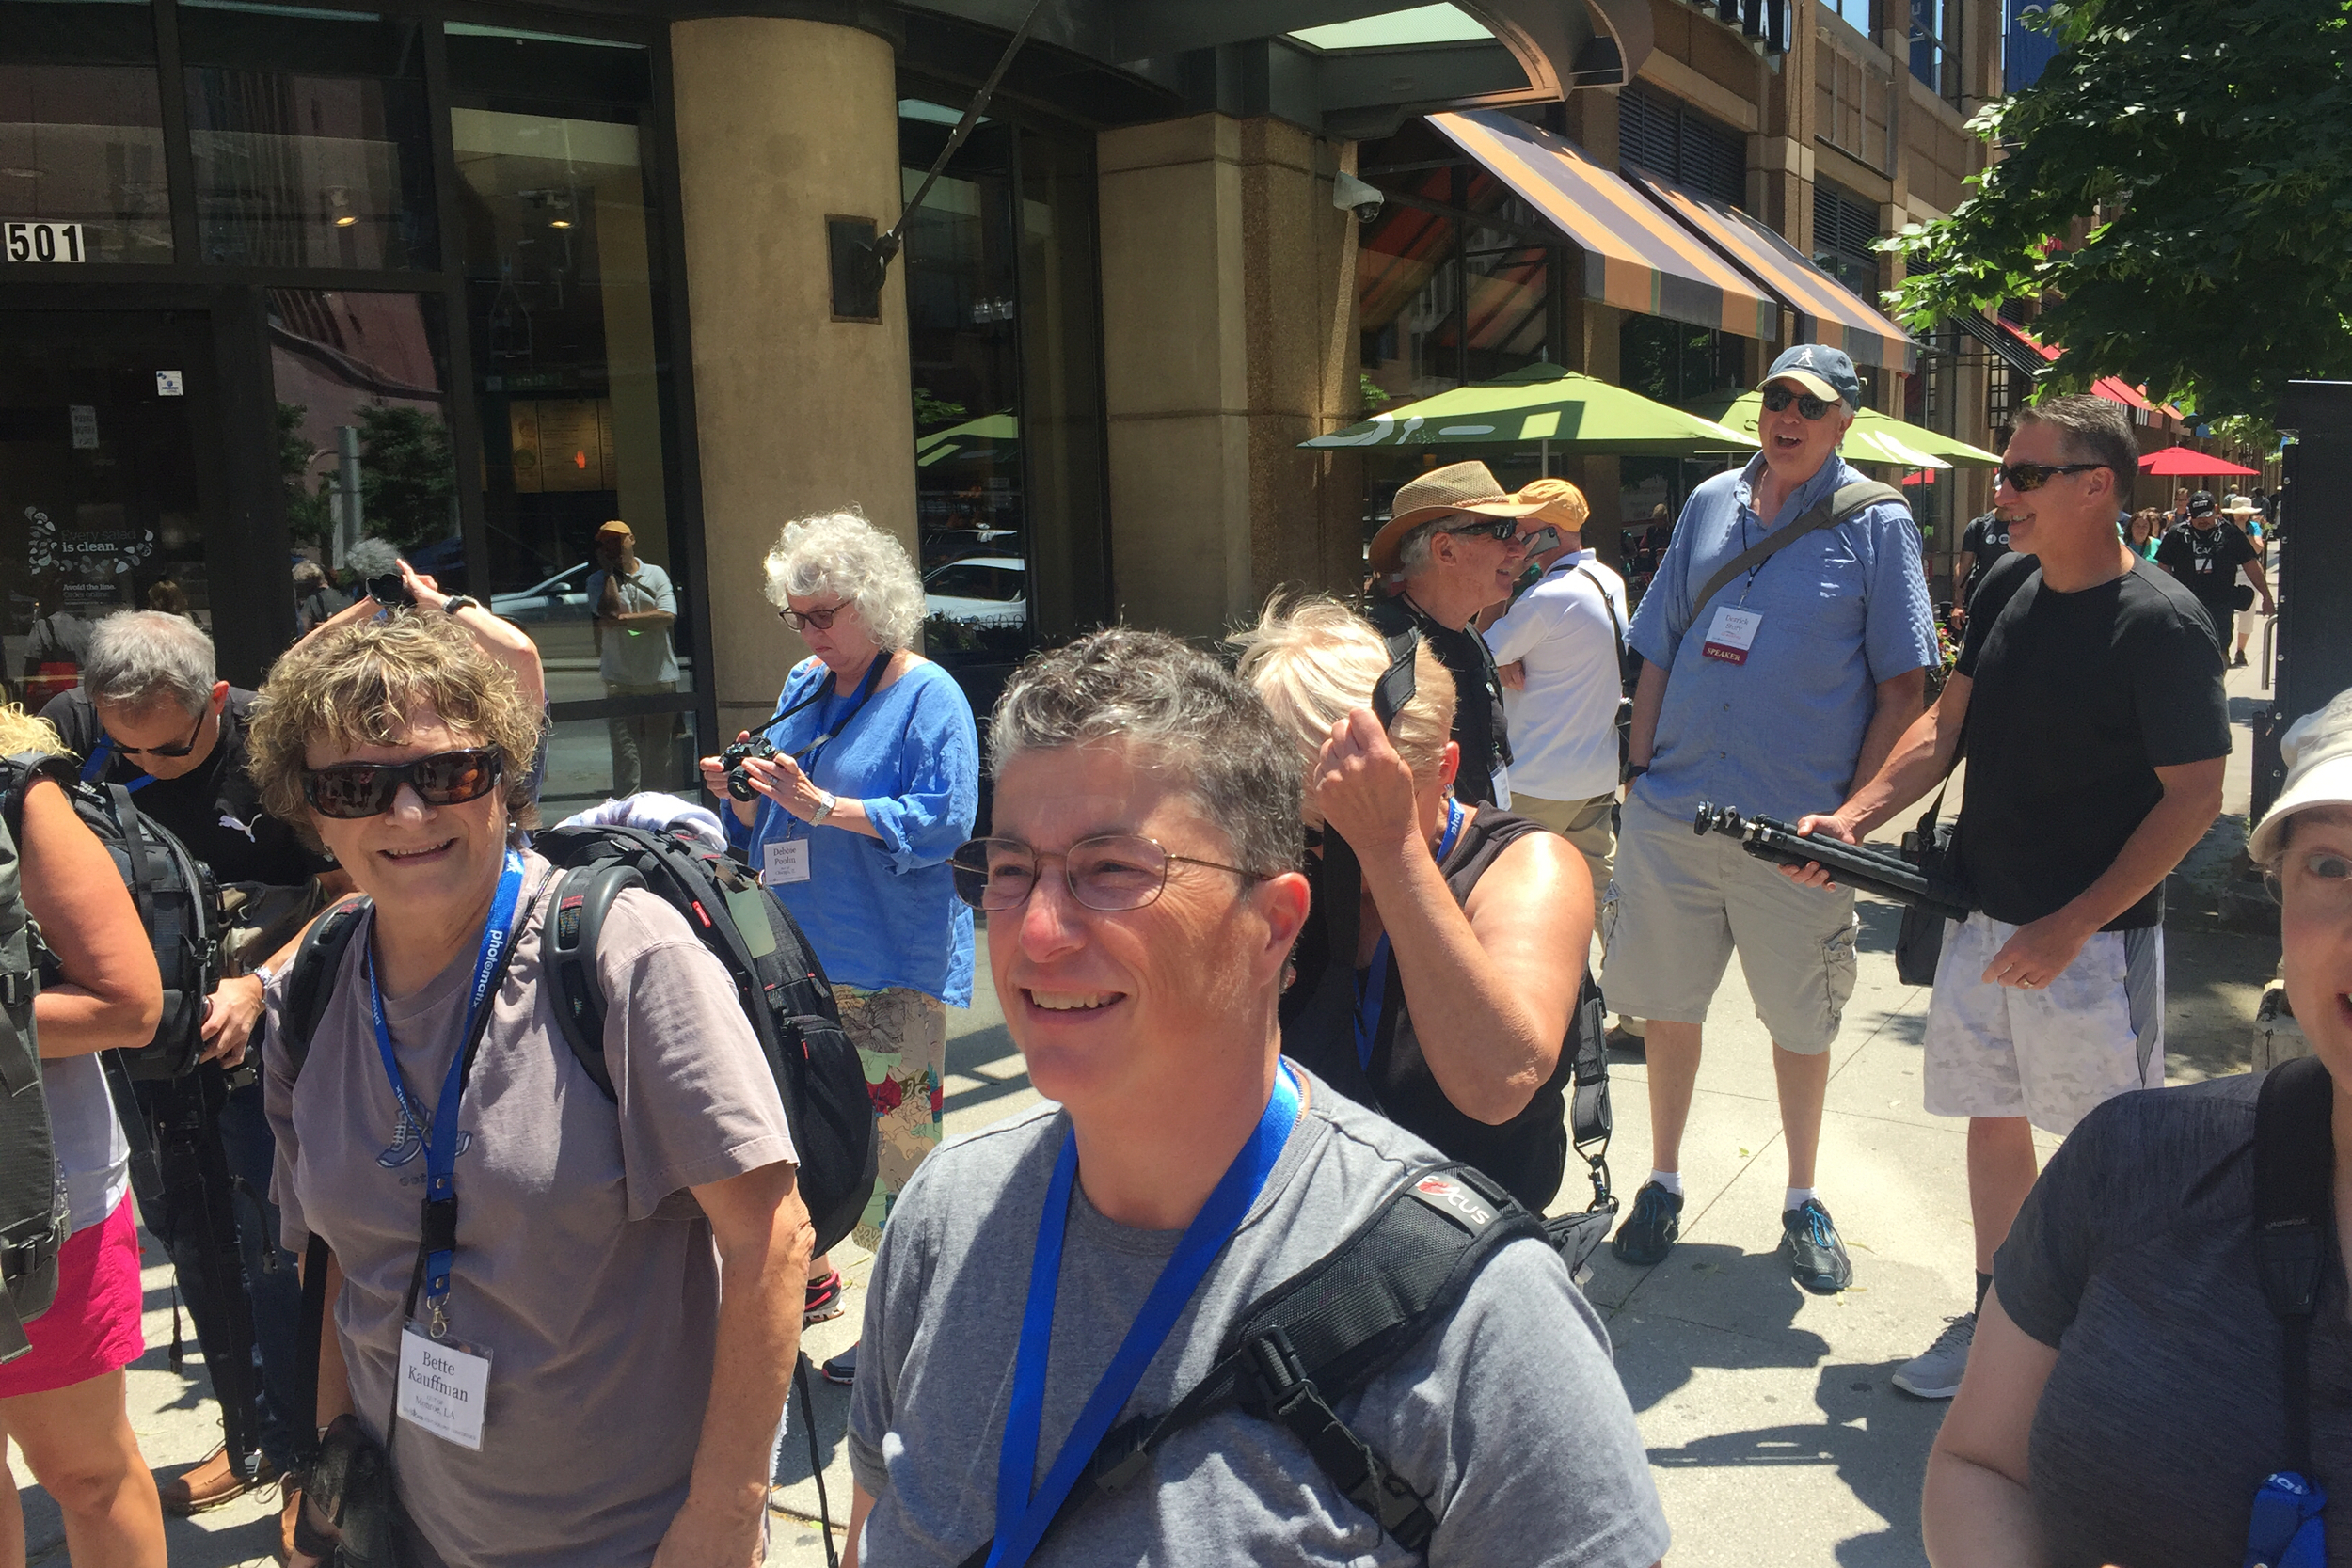 Happy conference participants heading out on a photowalk.